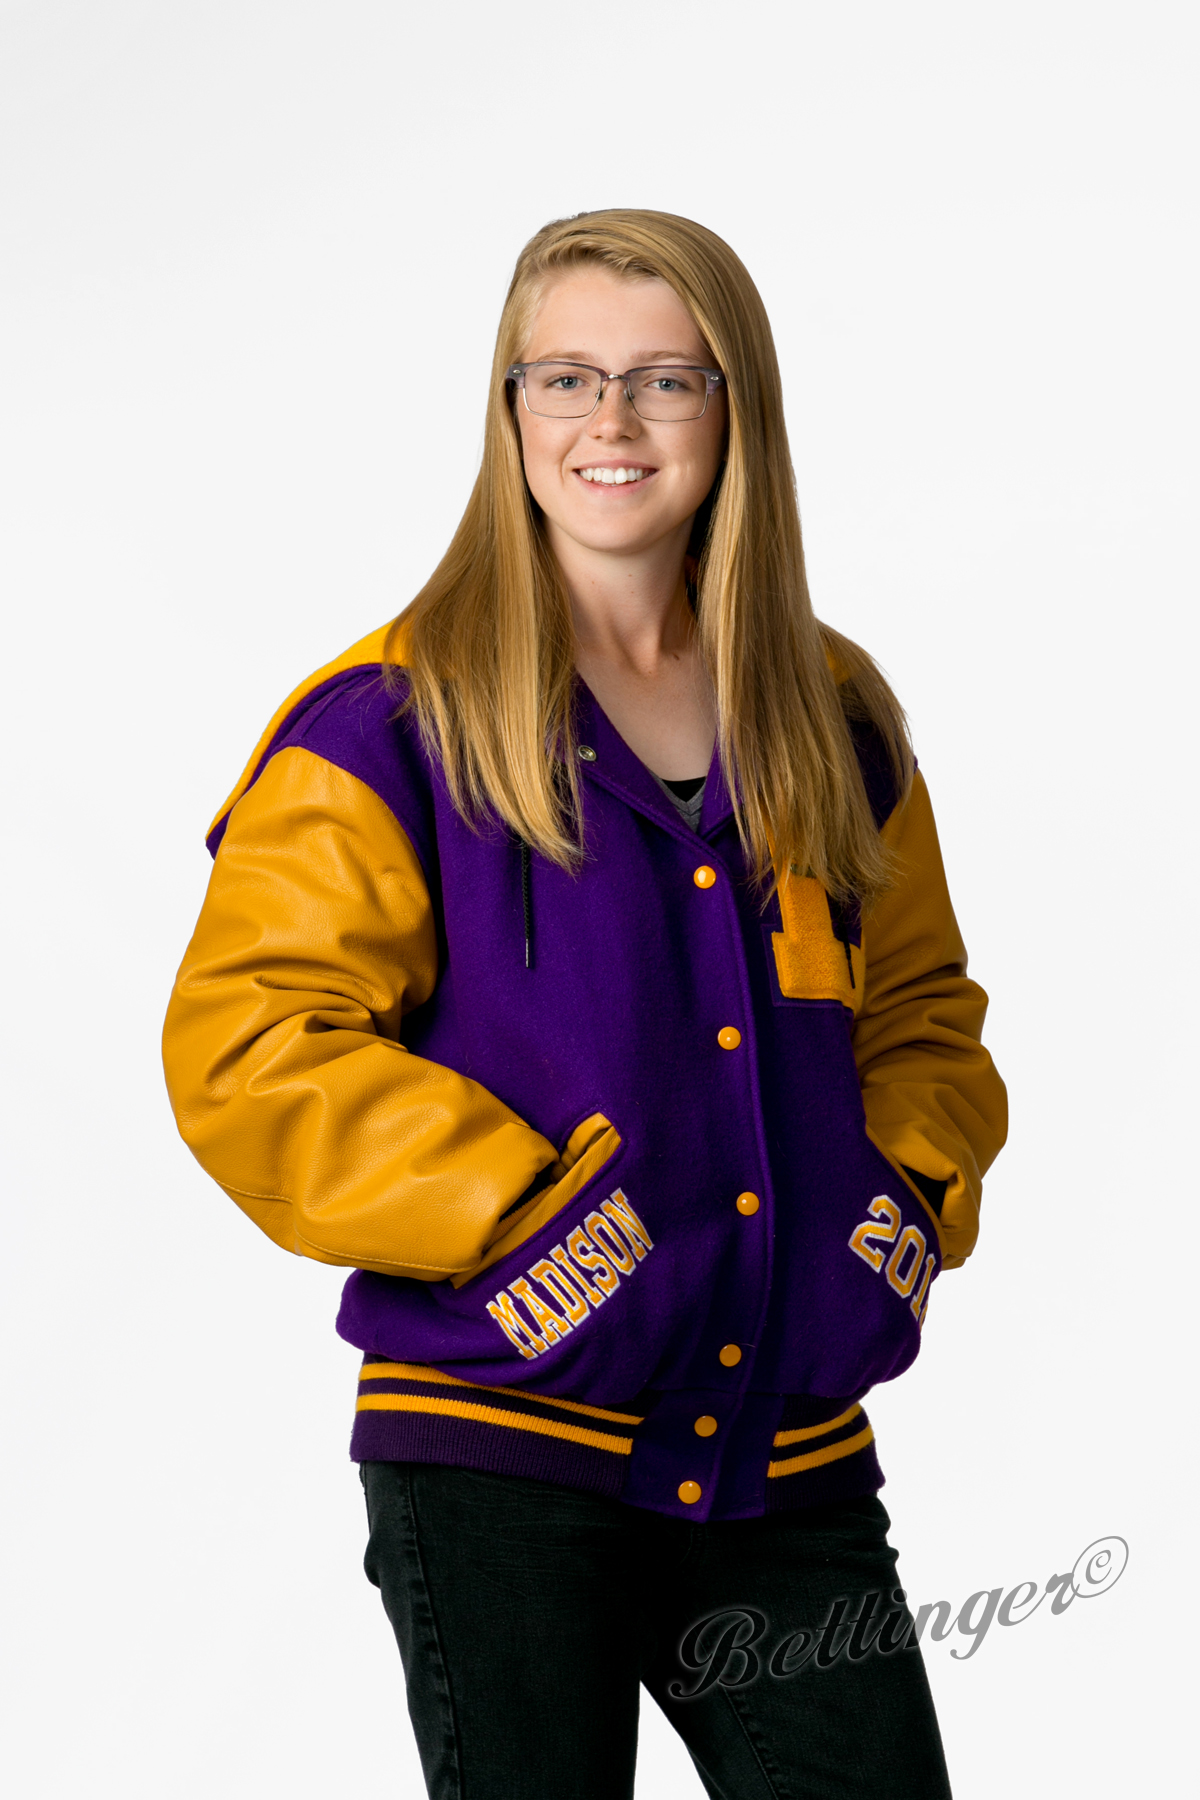 - Madison plays the drums, both set and in marching band. She says that marching band is the best thing she has ever done for herself. She loves hockey and football and wants to be a Veterinarian.